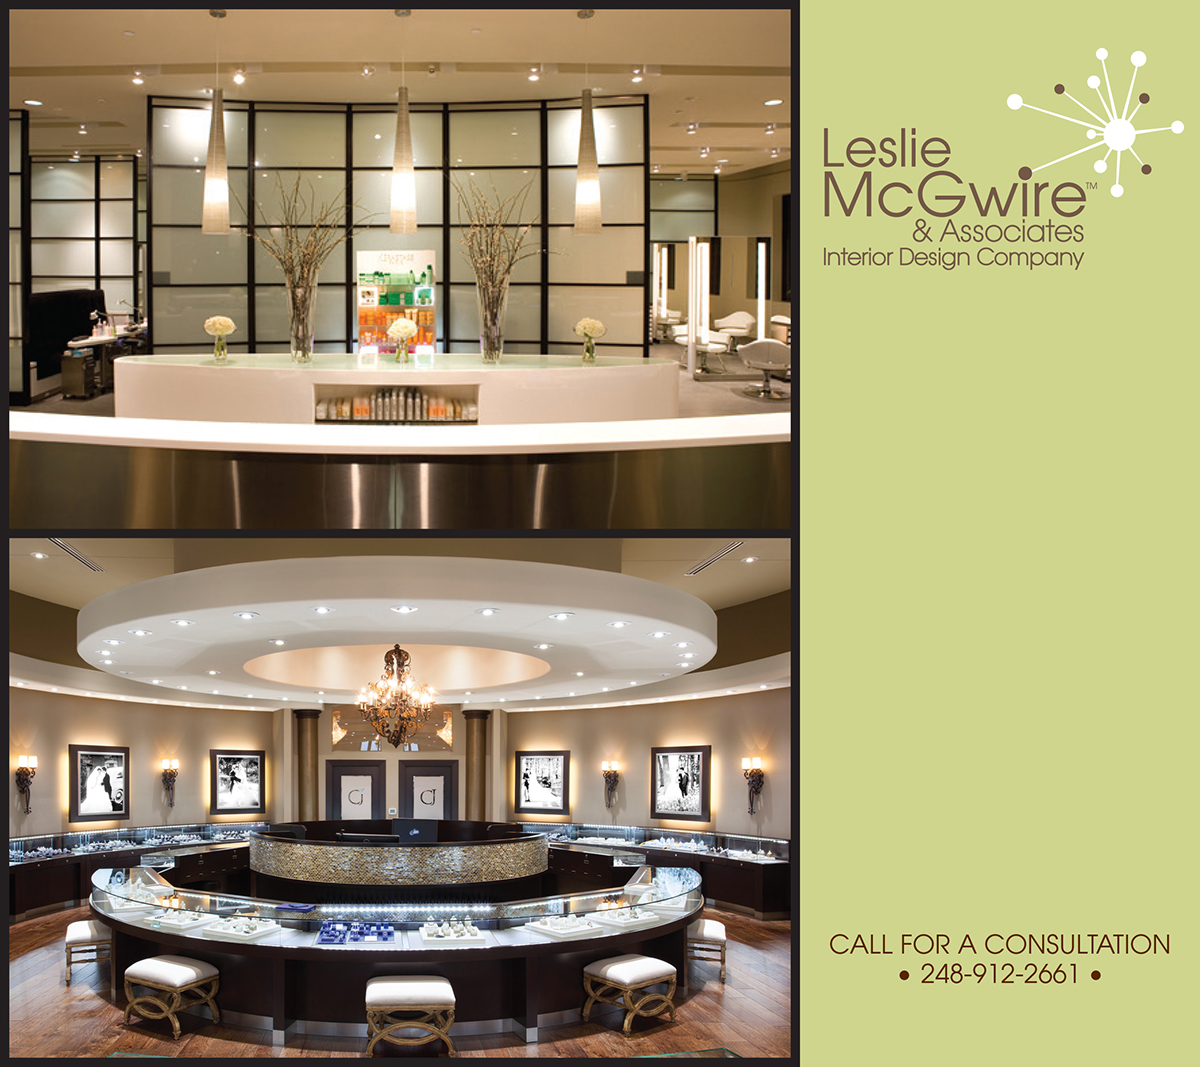 Beau Leslie McGwire™ ASID Allied Has Over 30 Years In Business Development, Interior  Design, Equipment, Furniture Sales And Marketing Services For Health, ...